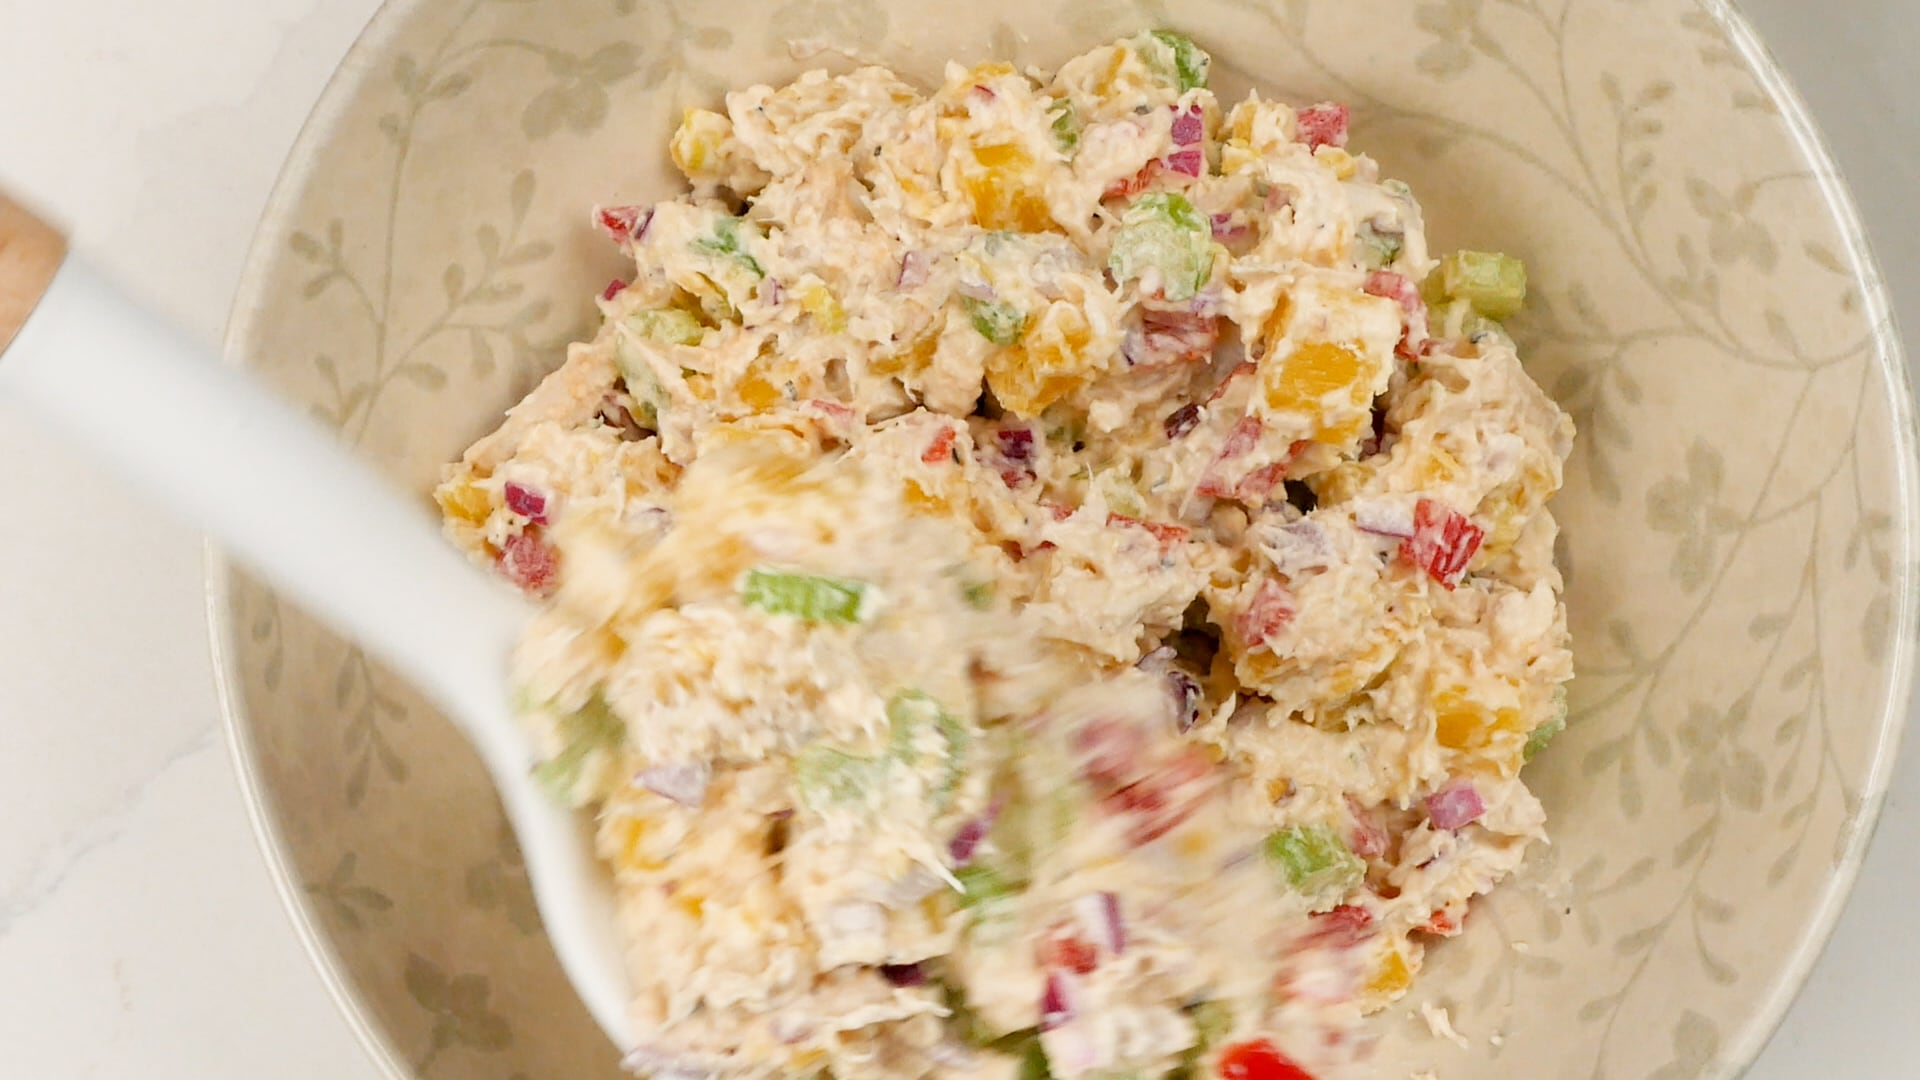 Scooping potato and chicken salad onto a plate